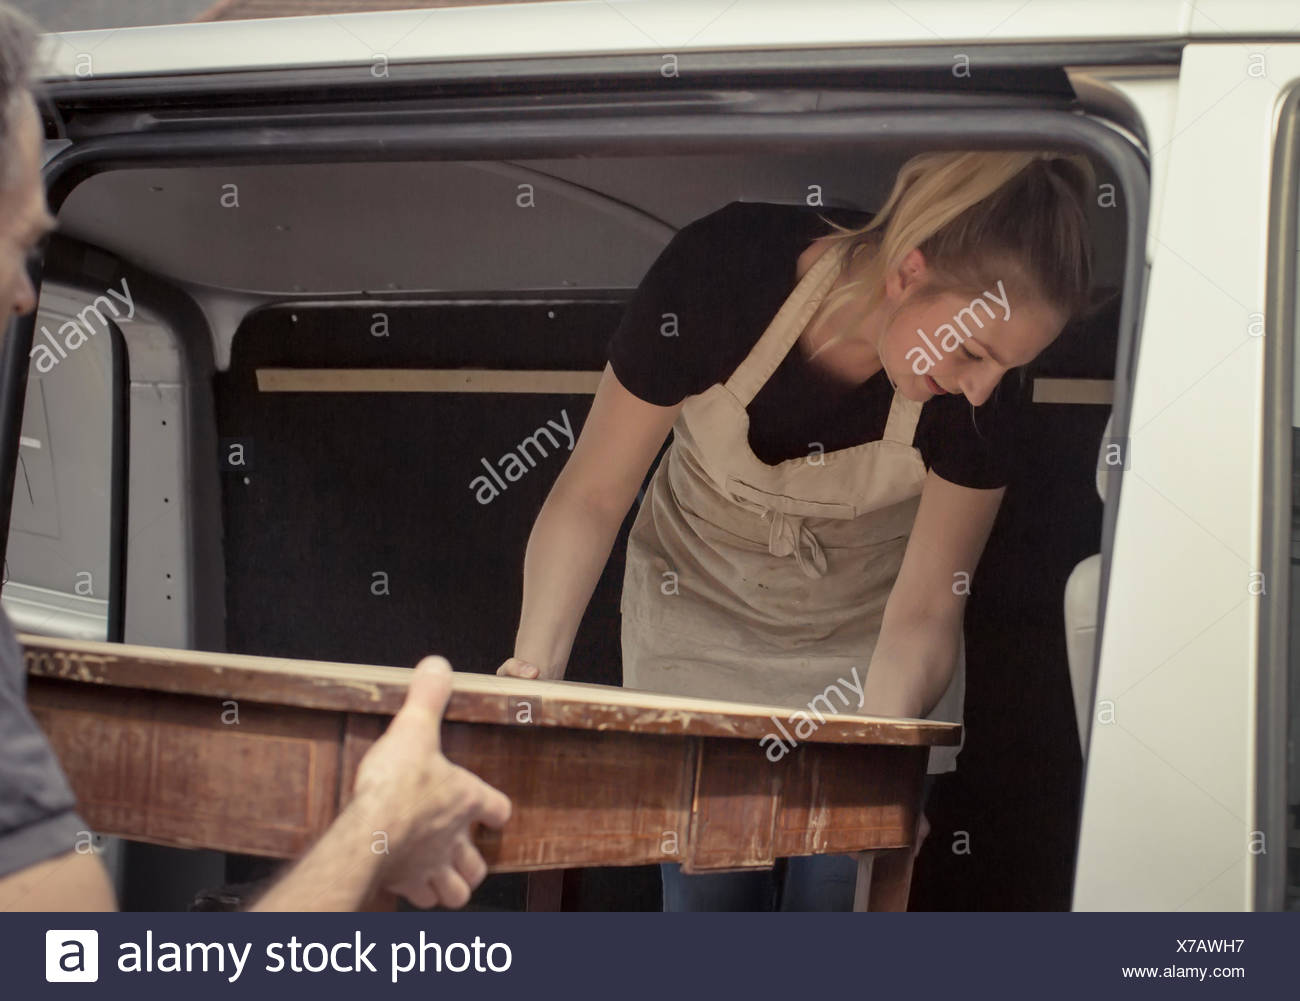 Two people, a man and a young woman lifting an antique wooden table into the back of a van. - Stock Image